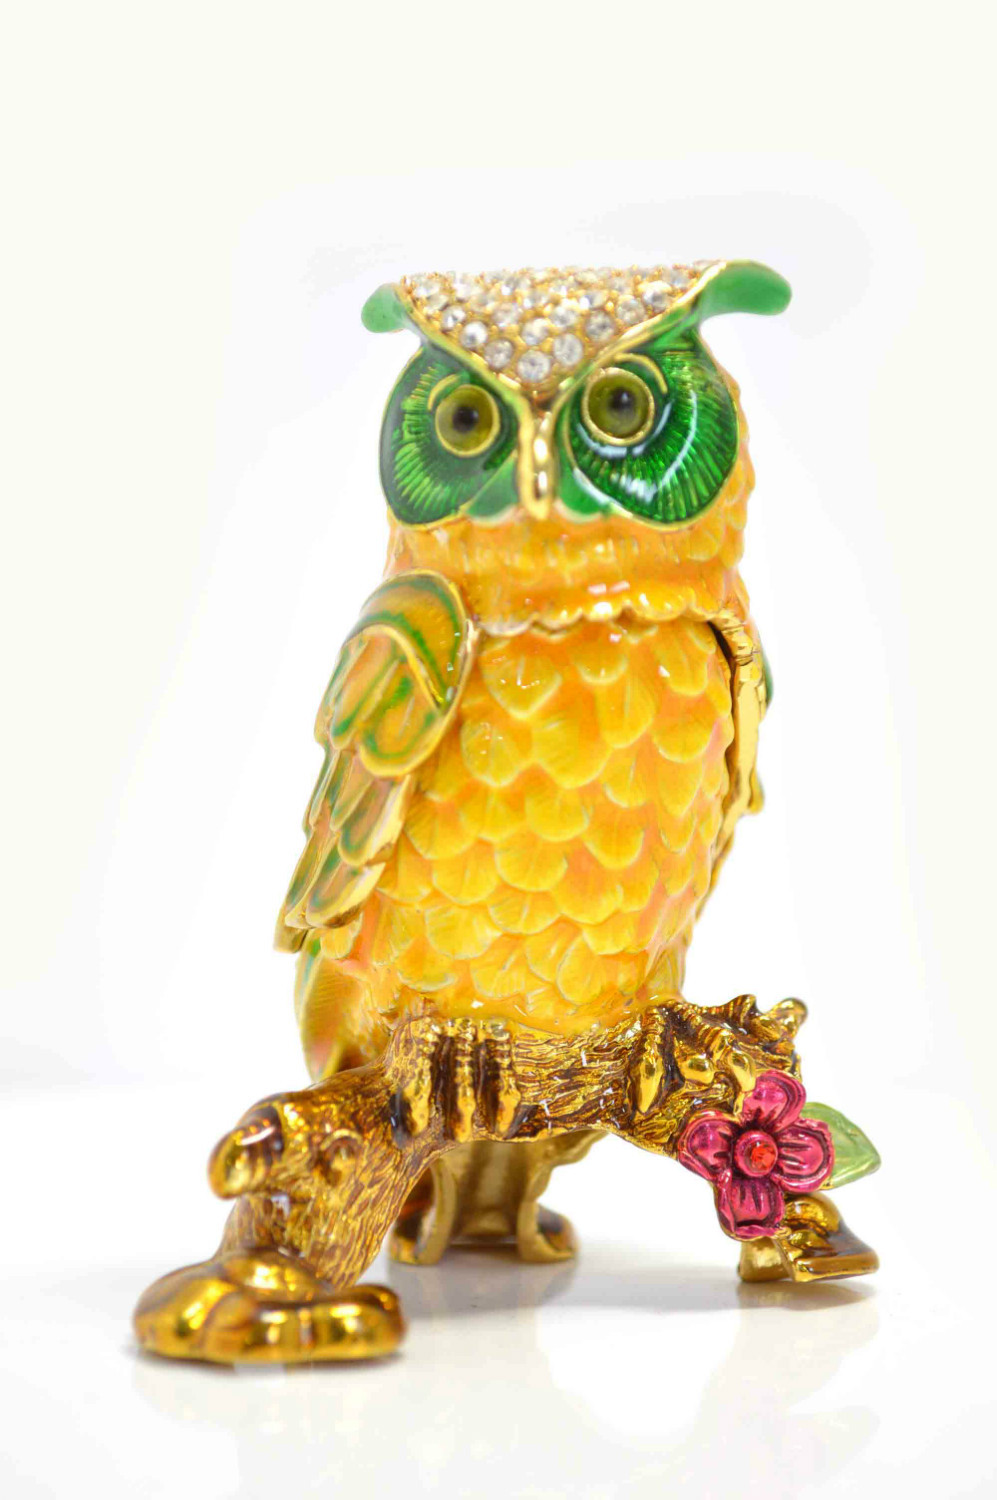 QIFU Fashion Gold Metal Owl Decor,European Style Handicraft ,Wedding Decorations,Animal Handicrafts